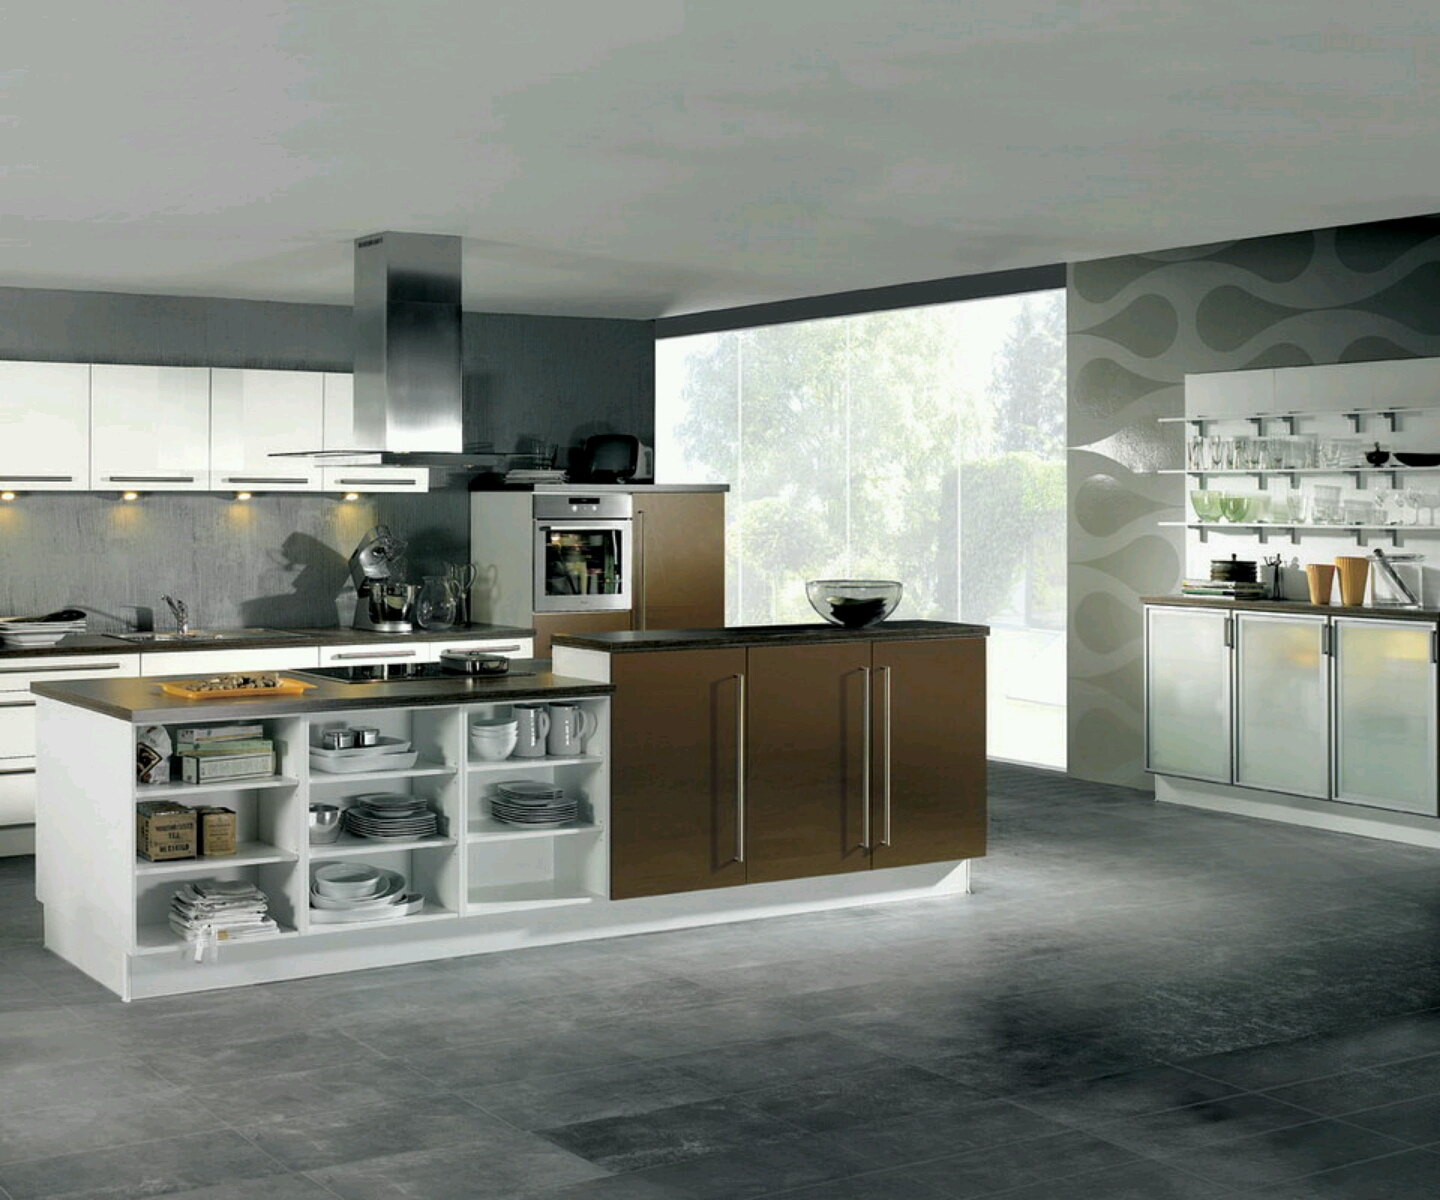 New home designs latest ultra modern kitchen designs ideas for Kitchen ideaa